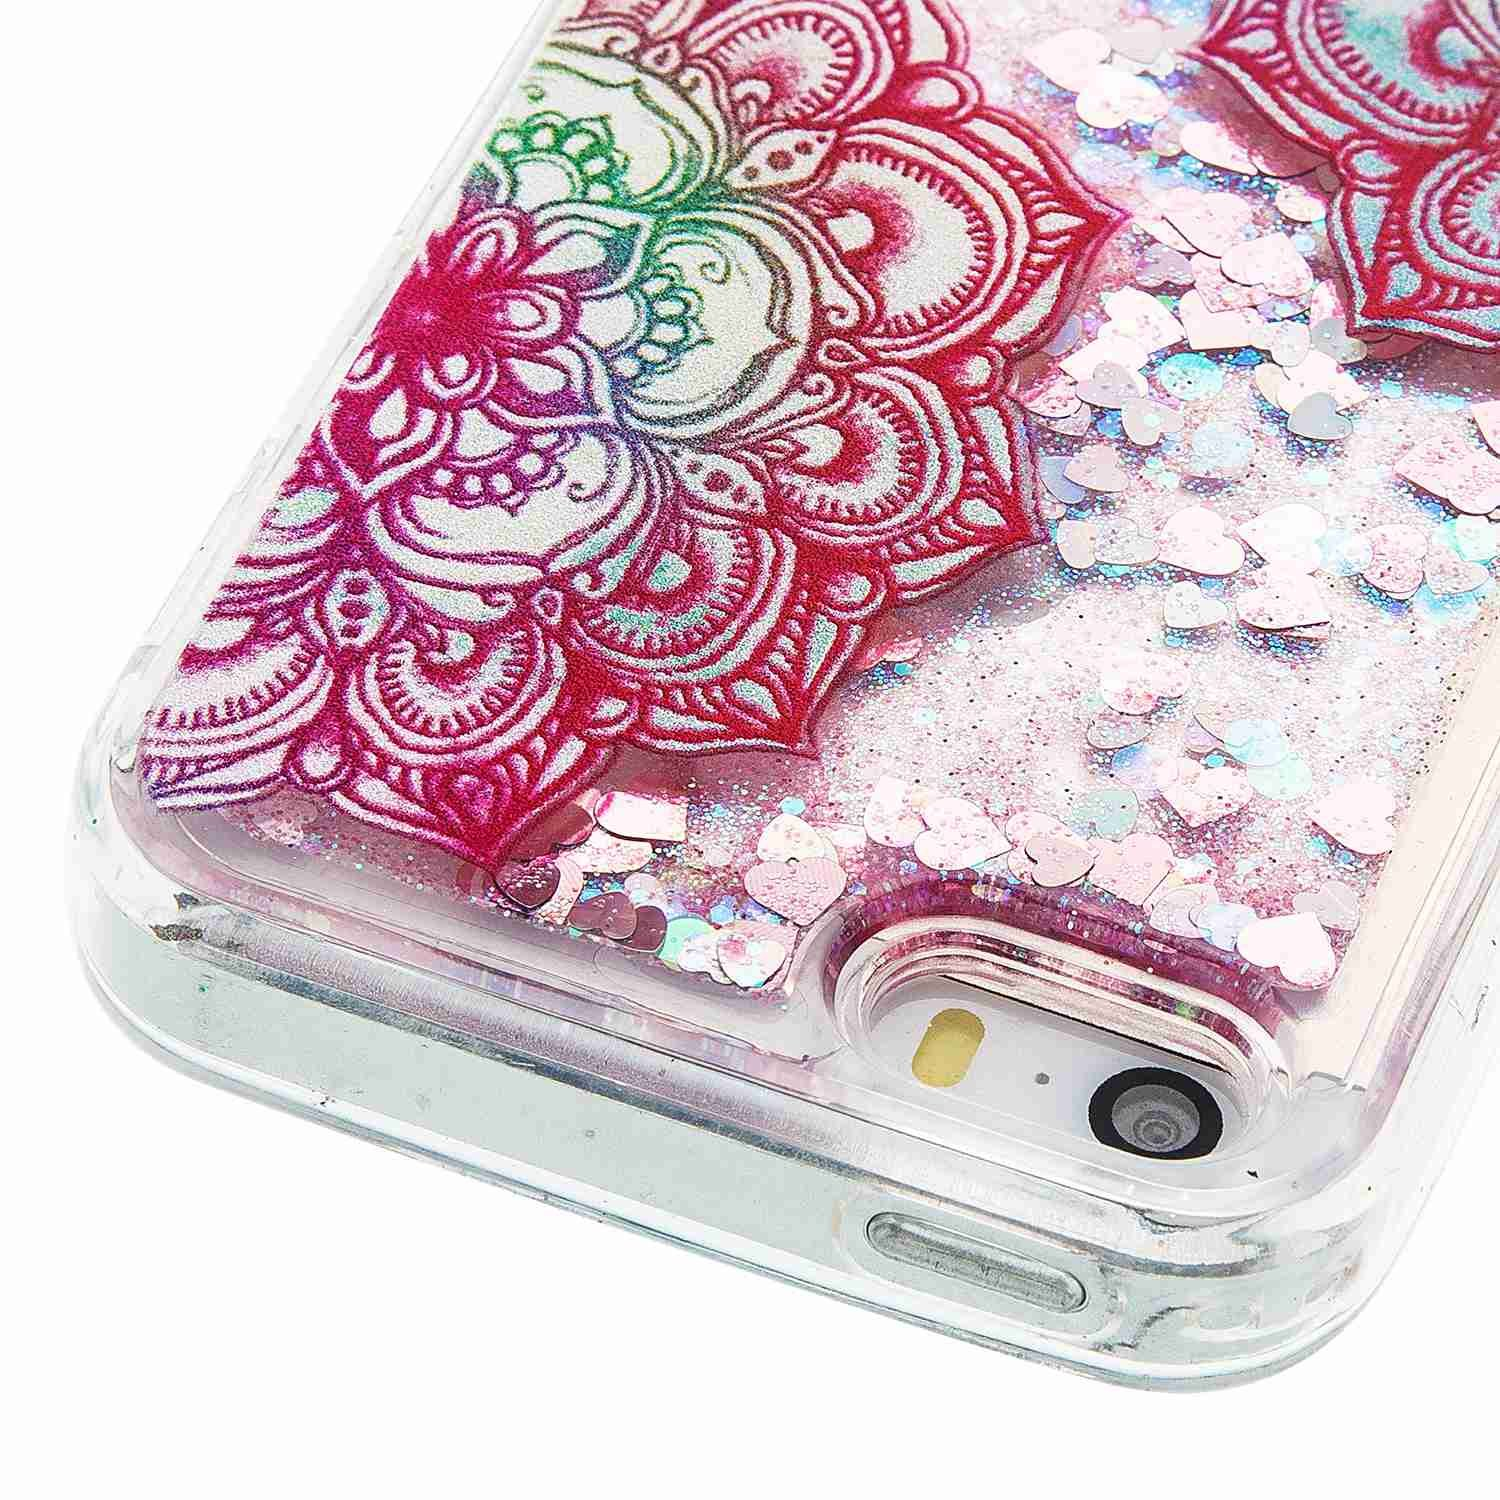 Iphone 5s Case Se Arsue Cool Moving Bling Casing 4 4s Softcase Motif Owl Glitter Sparkle Design Printed Liquid Quicksand Transparent Soft For 5